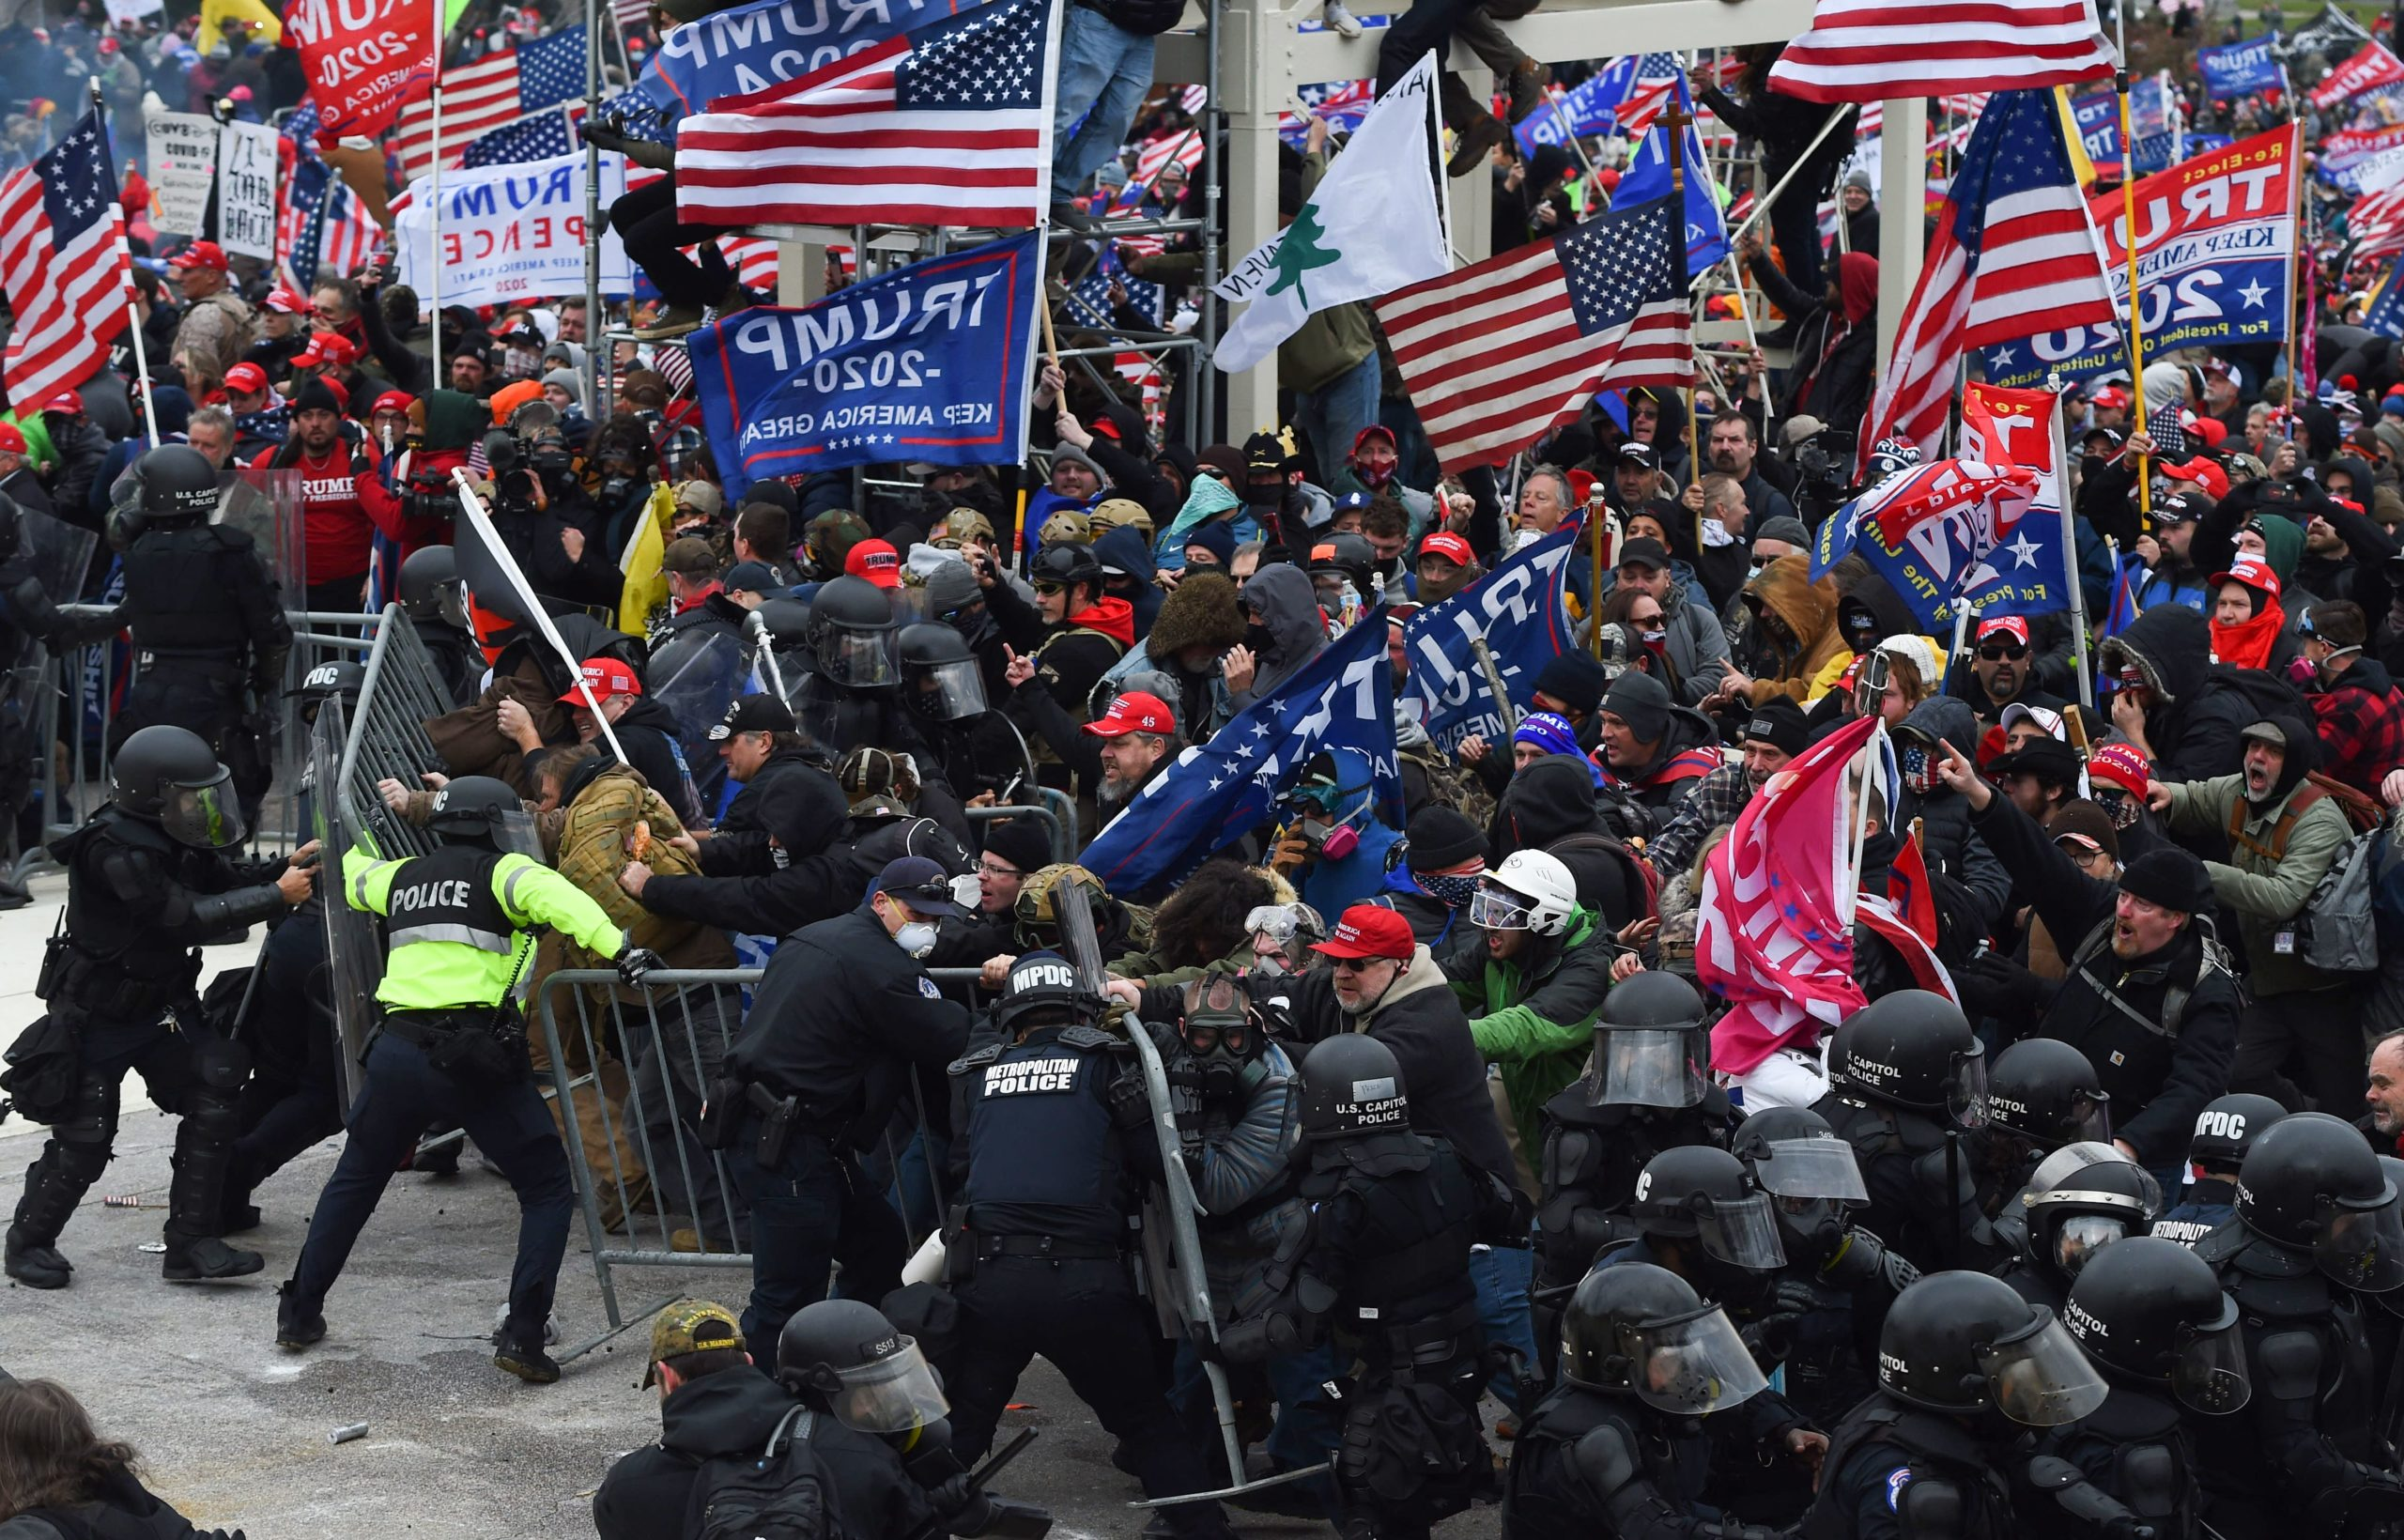 Trump supporters clash with police and security forces as they push barricades to storm the Capitol in Washington D.C on Jan. 6. (Roberto Schmidt/AFP via Getty Images)